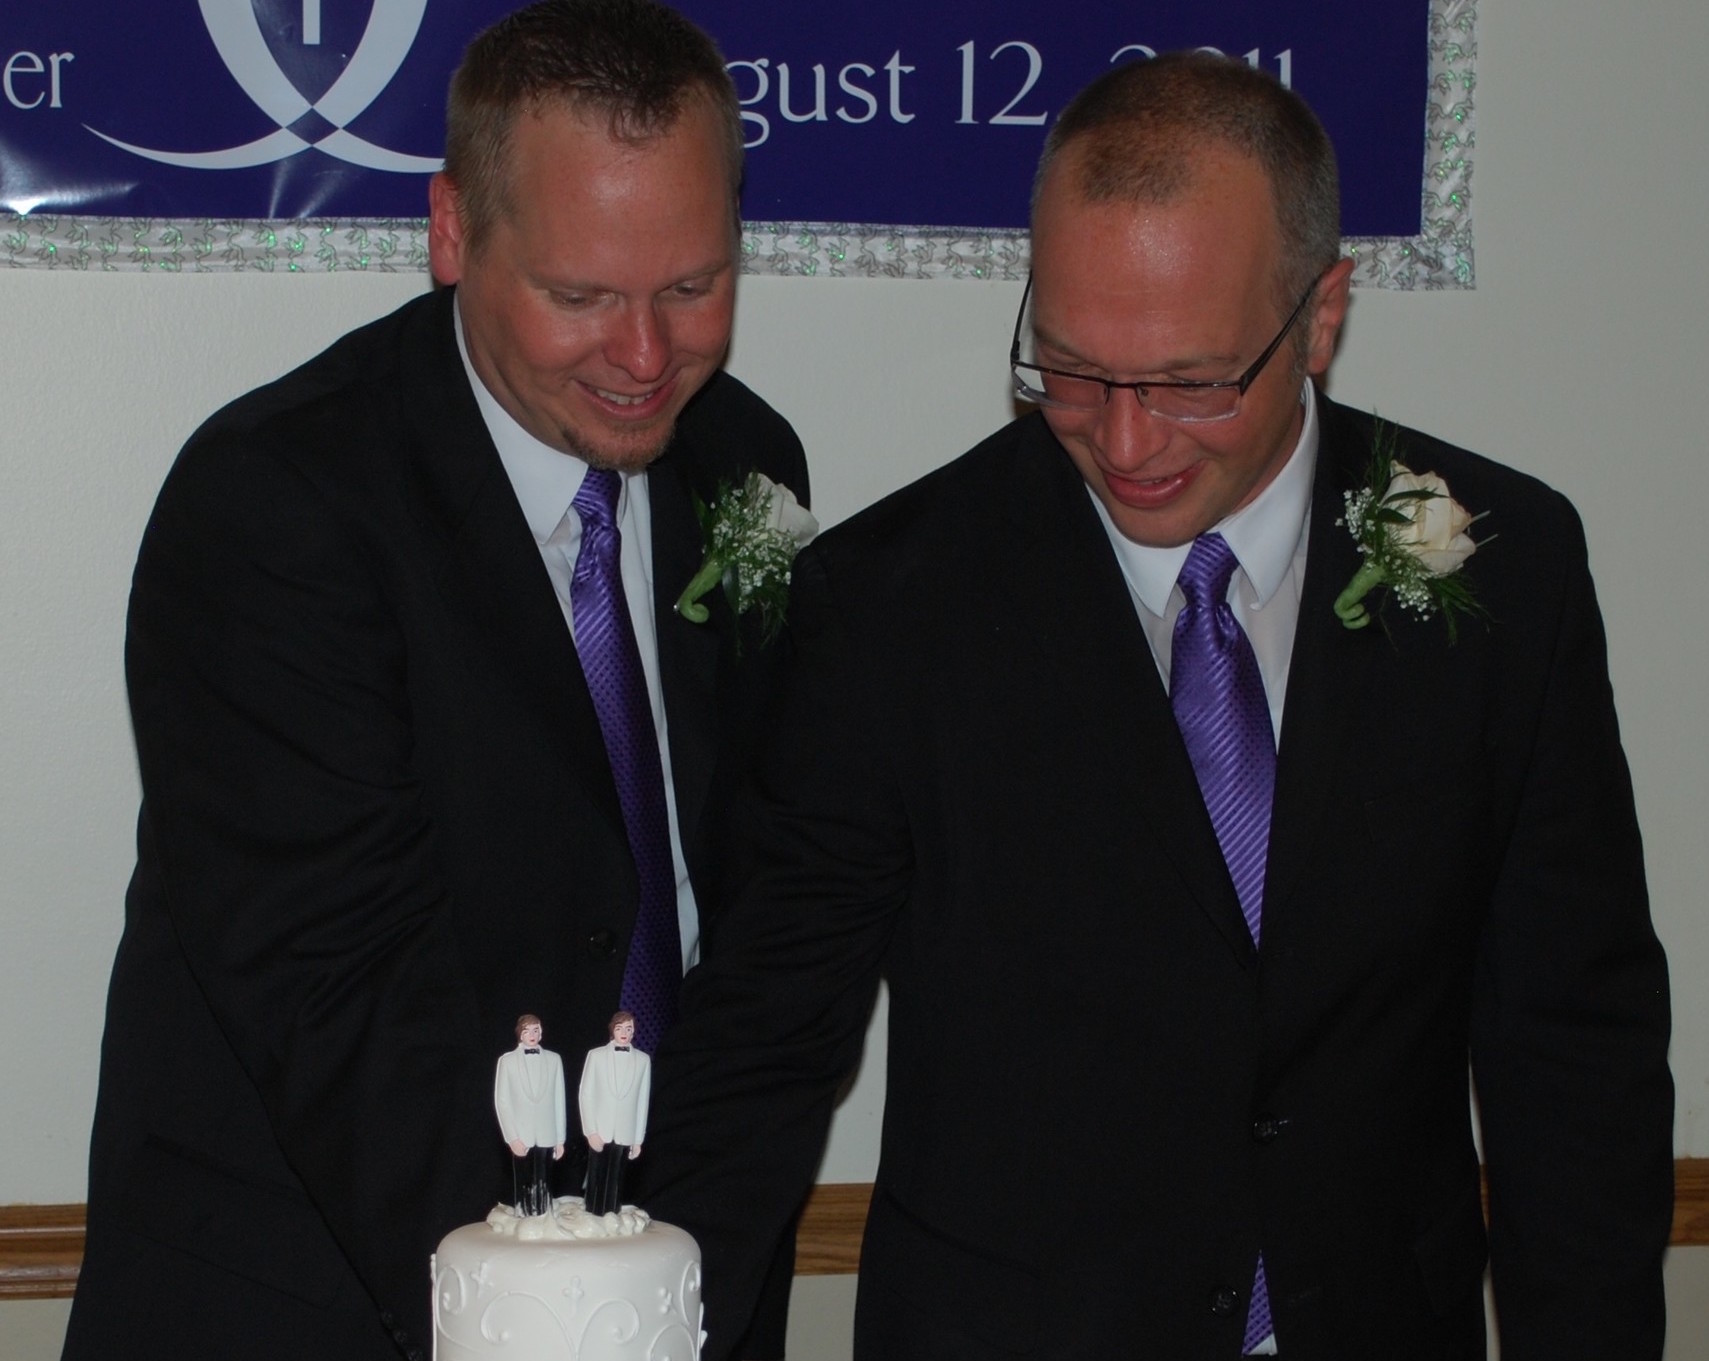 The Rev. Christopher Hofer, left, married Kerry Brady in August 2011 at the Church of St. Jude in Wantagh.